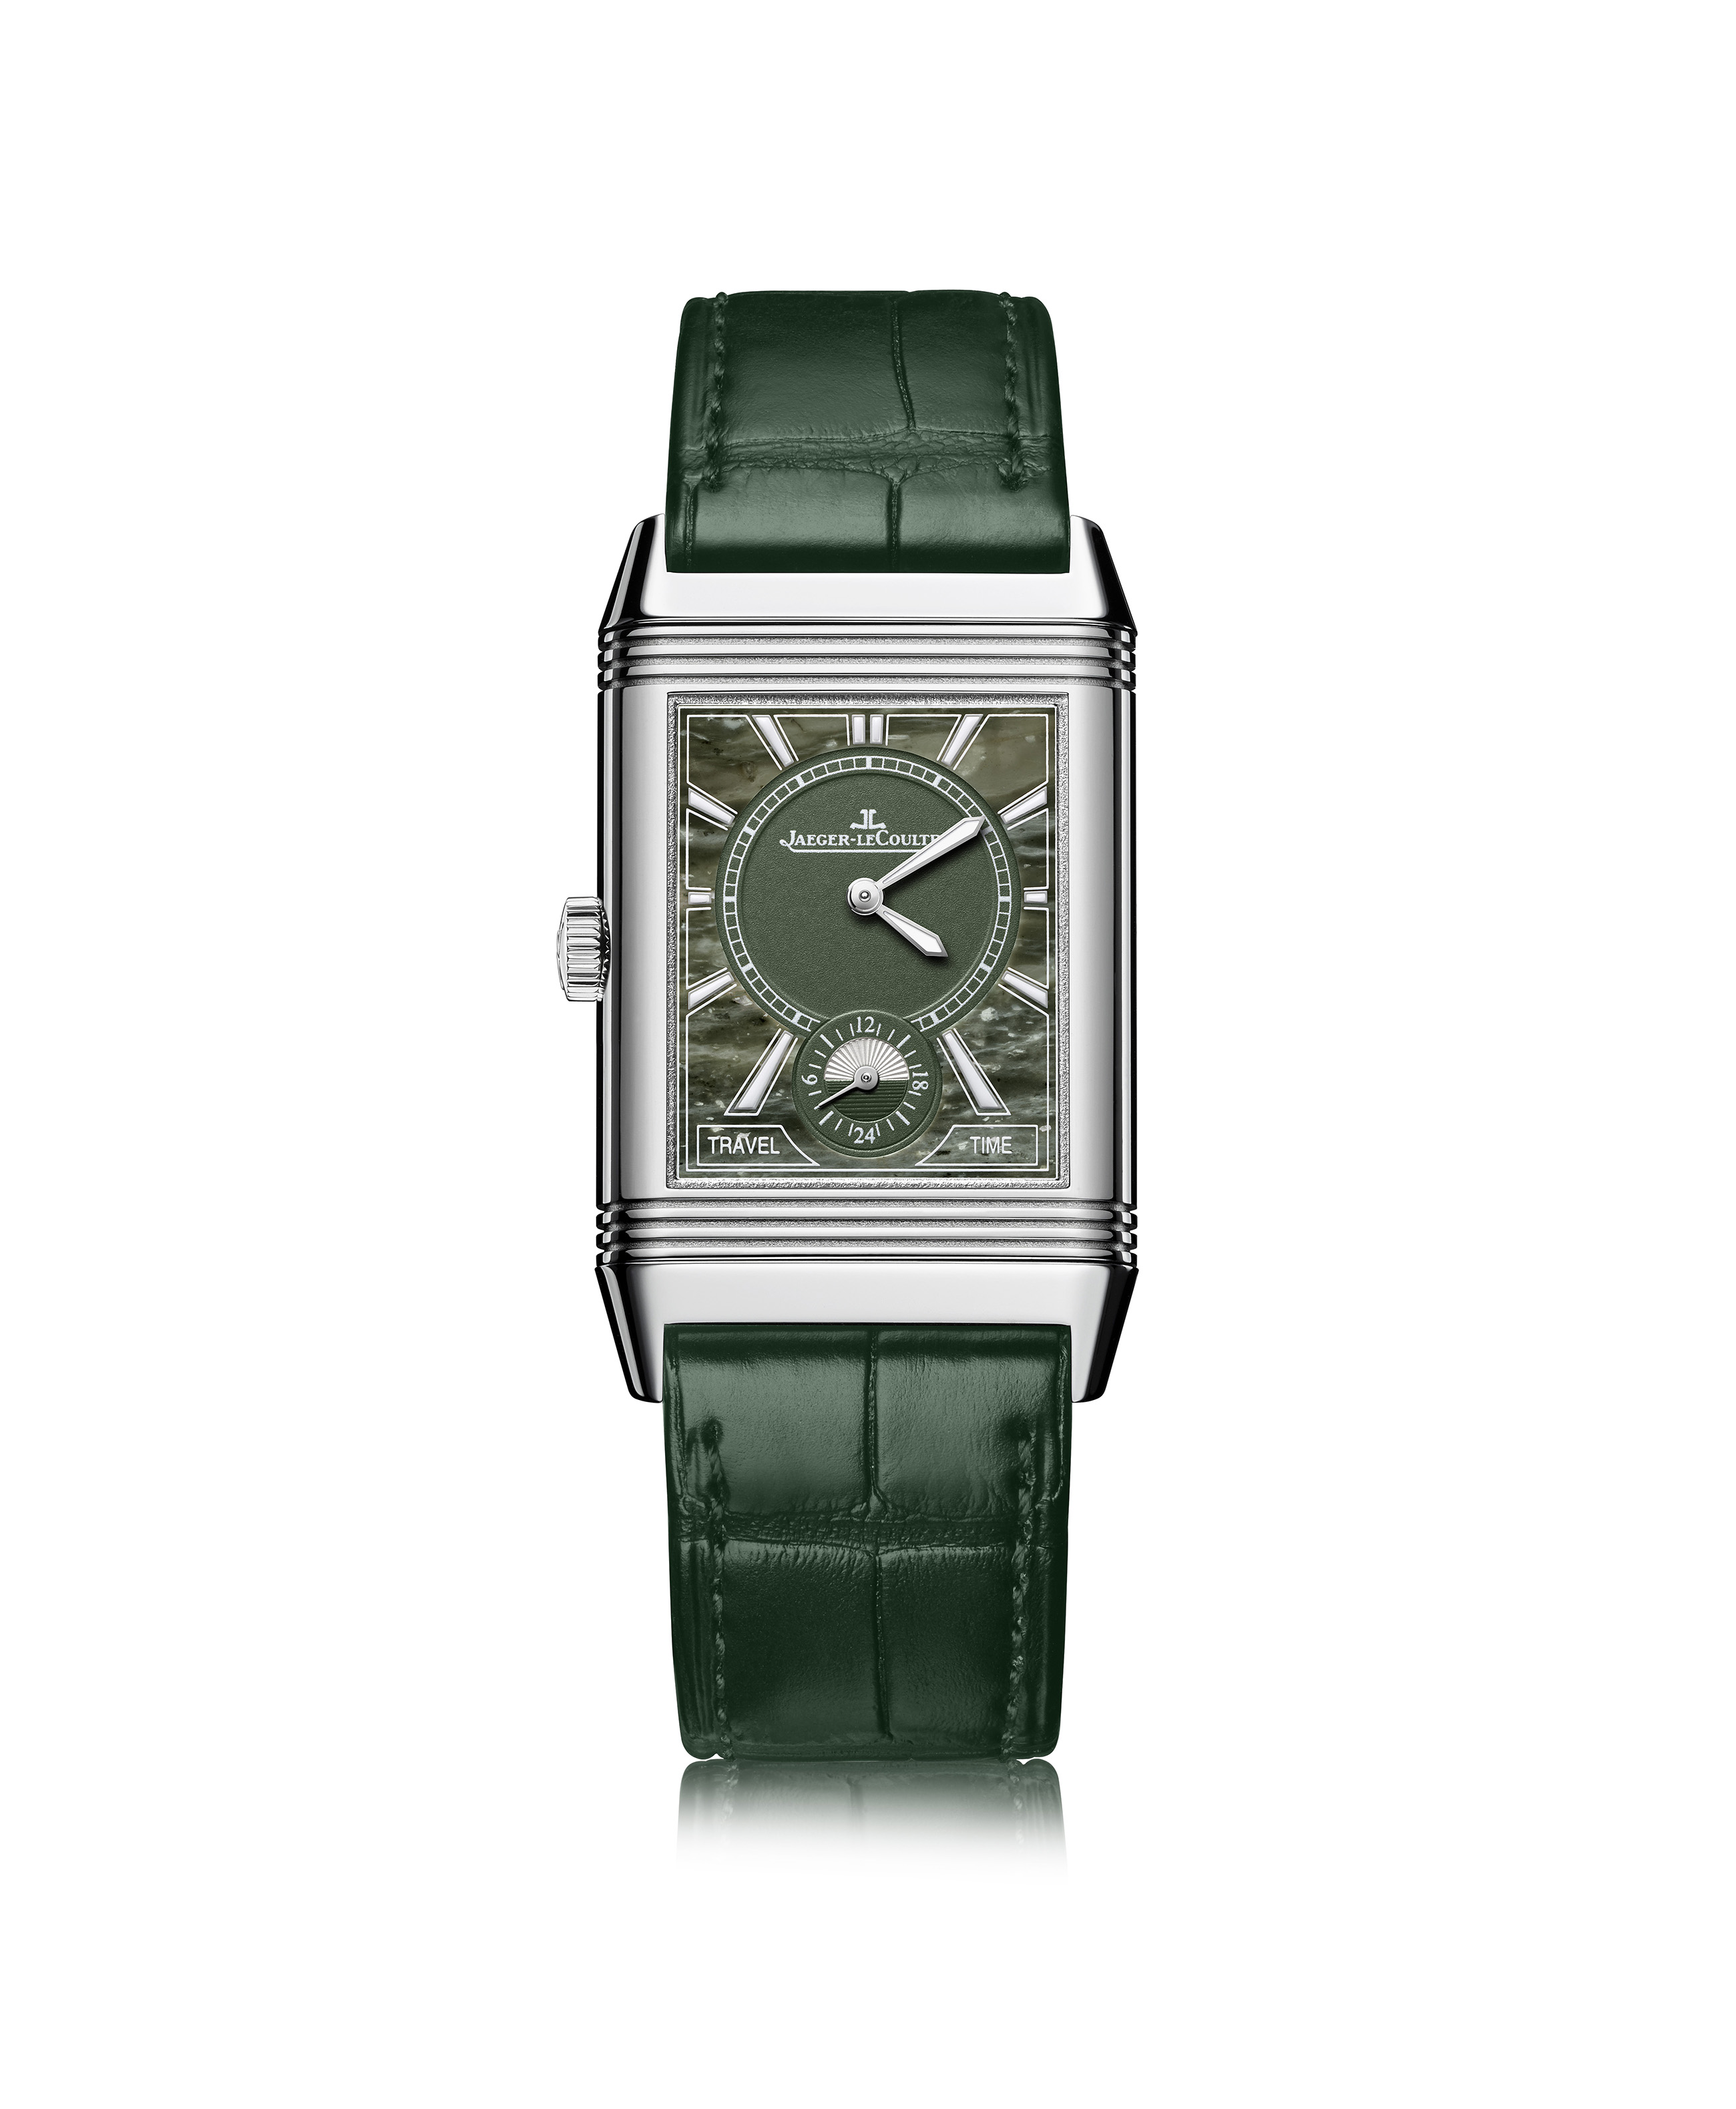 atelier_reverso_military_marble_dial_1 copy